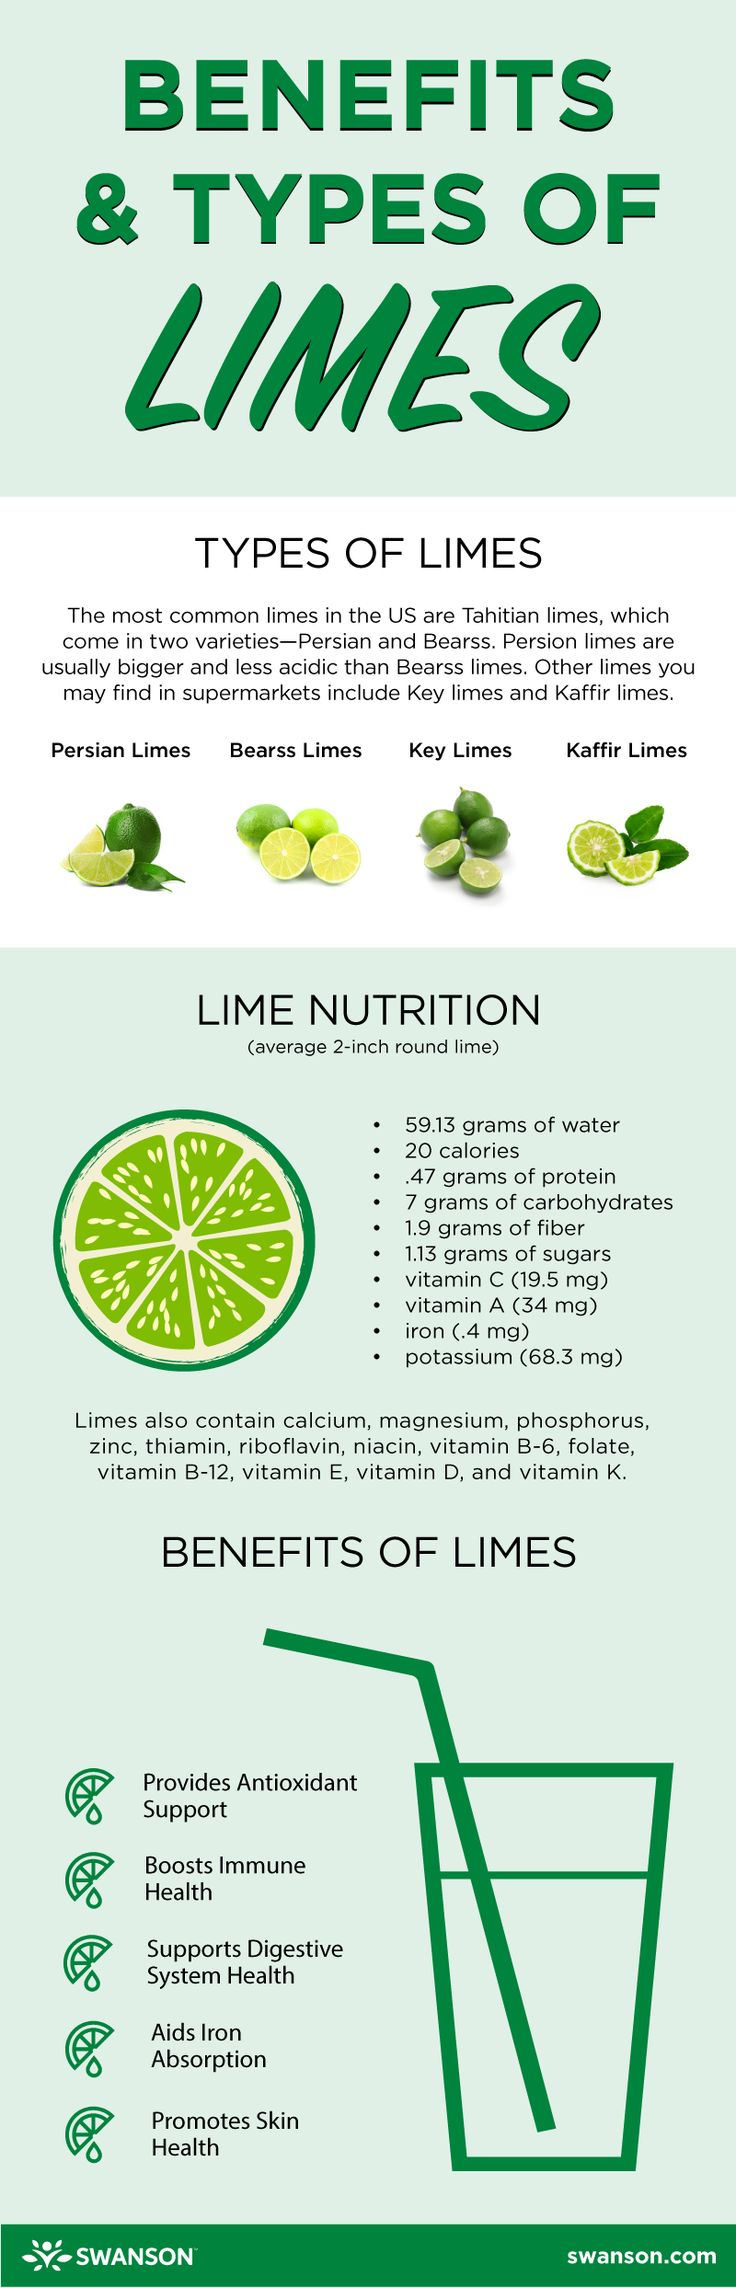 Benefits & Types of Limes